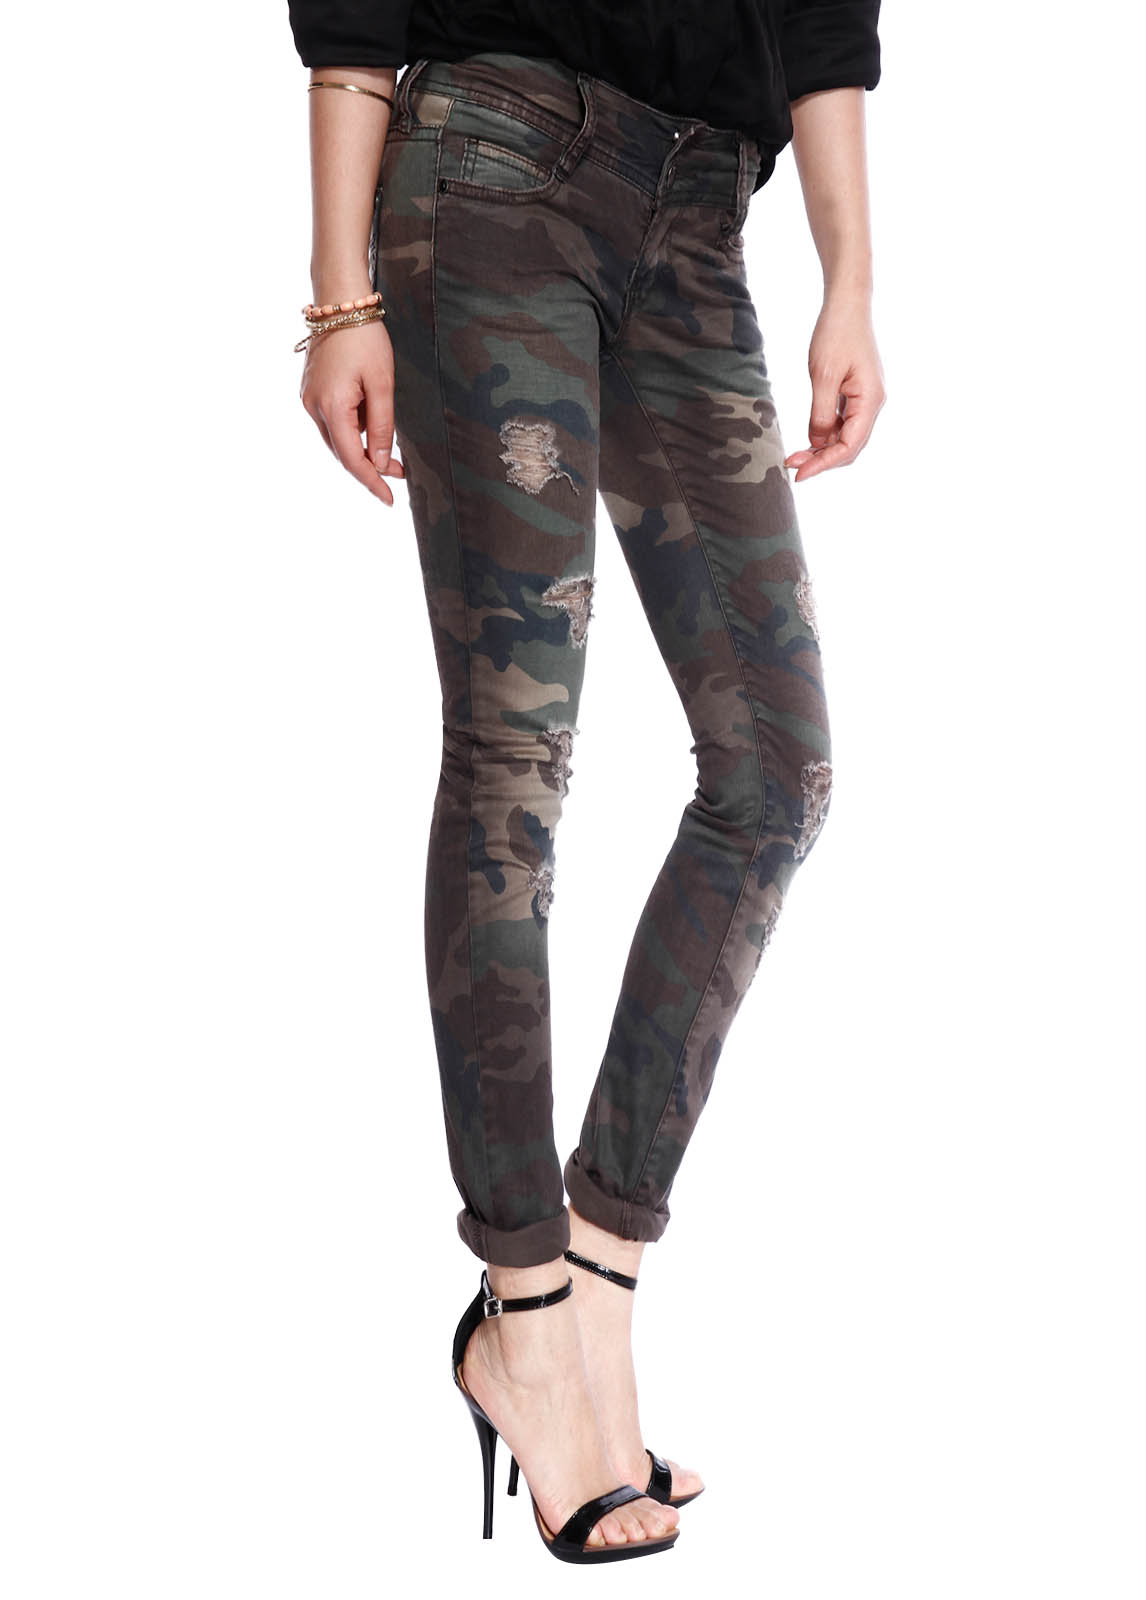 One style of women's skinny jeans that's always recommended are black skinny jeans. Timeless and flattering, our black skinny jeans are the perfect choice when you want to look chic. We have black skinny jeans available in a range of rises, from super high rise to low rise. On the other end of the spectrum, we also carry white skinny jeans.